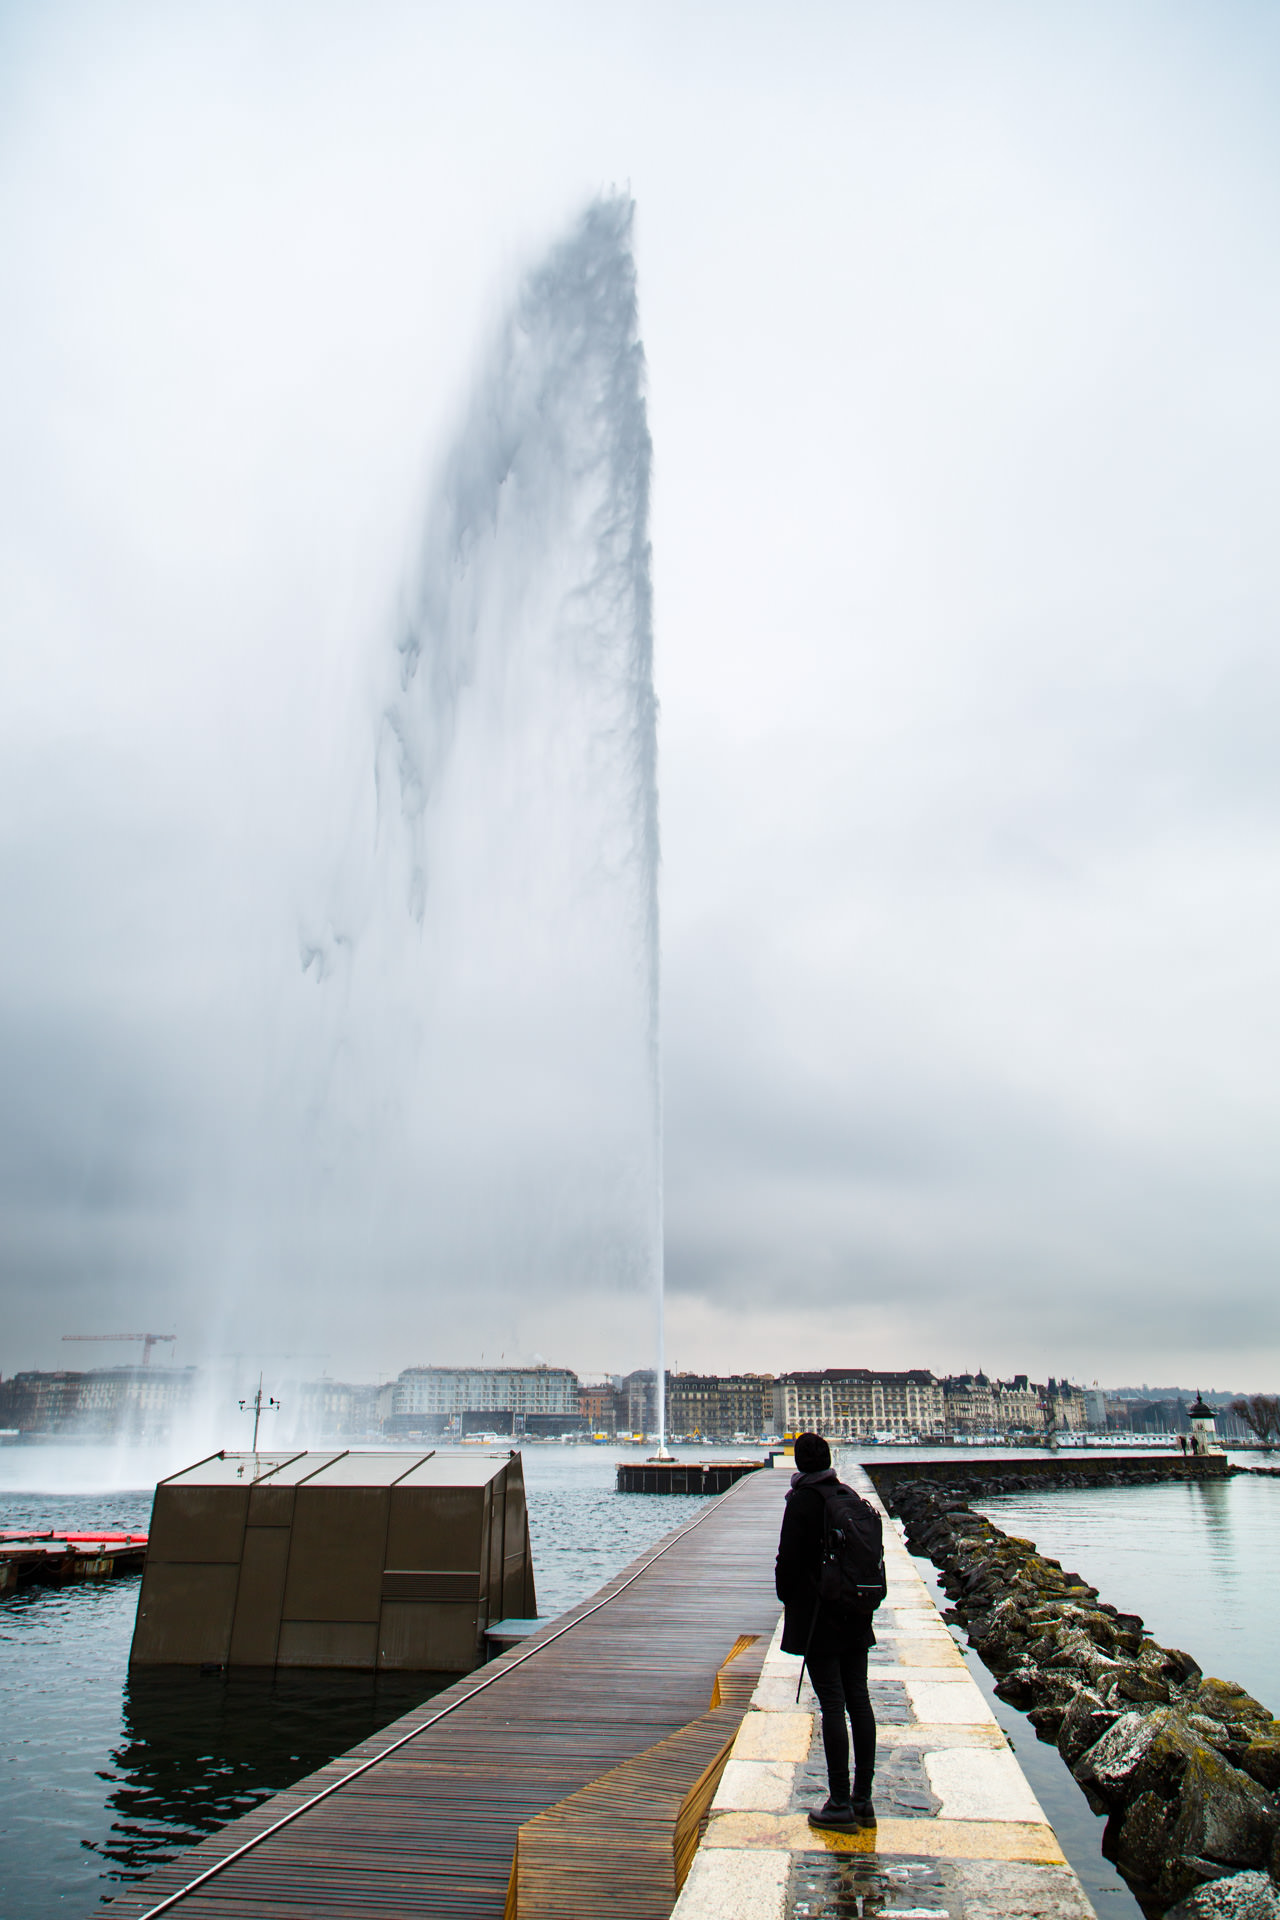 Day two began with us taking a closer look at the Jet d'Eau. It reaches a max height of 140 metres! Click  here  to find out more about it.